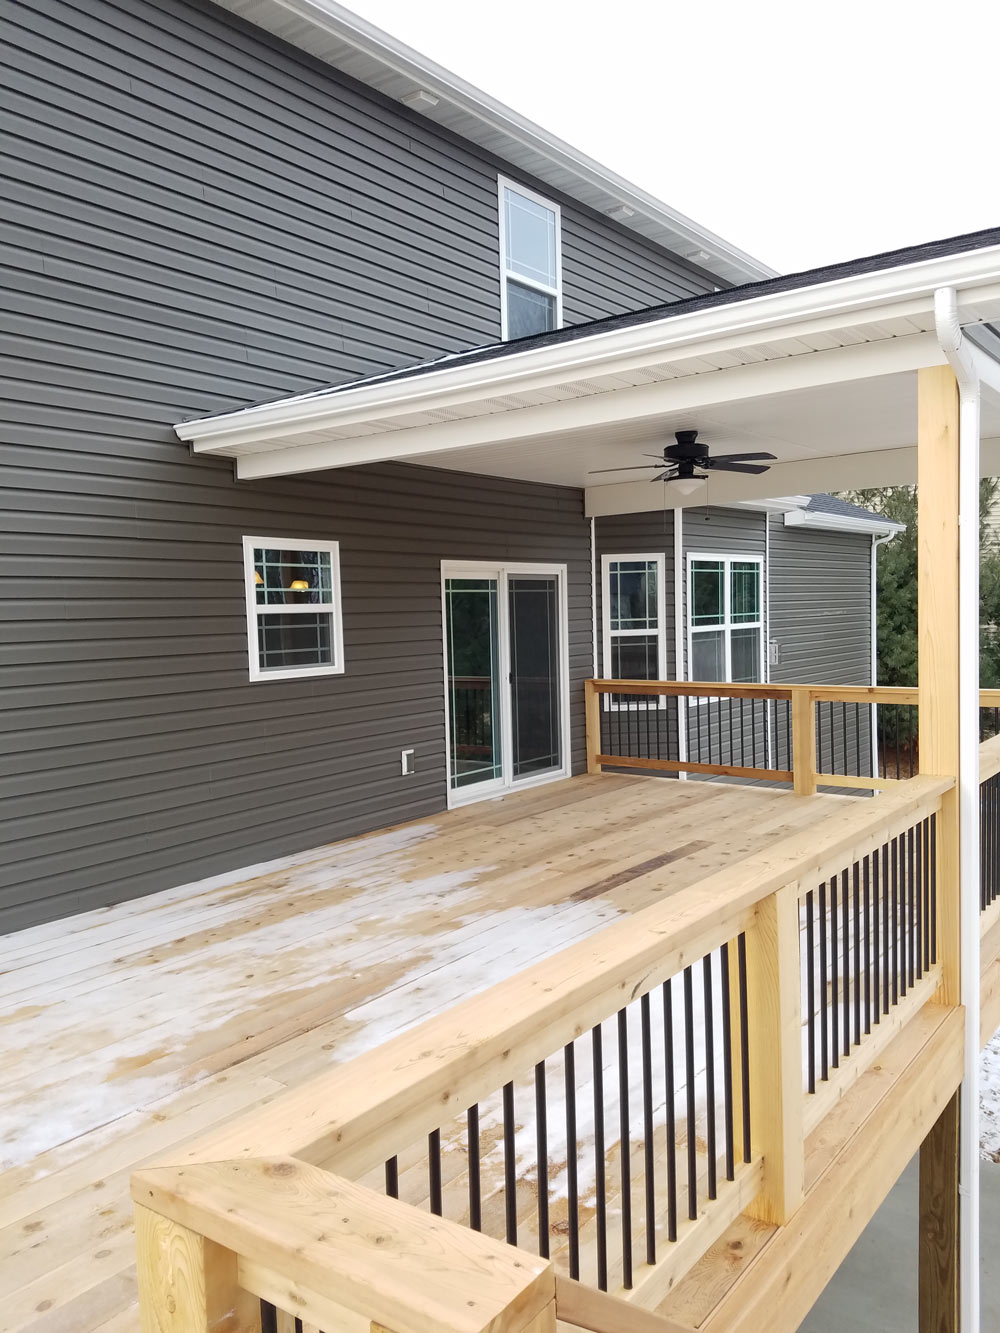 Custom Decks and Homes in Belleville, IL